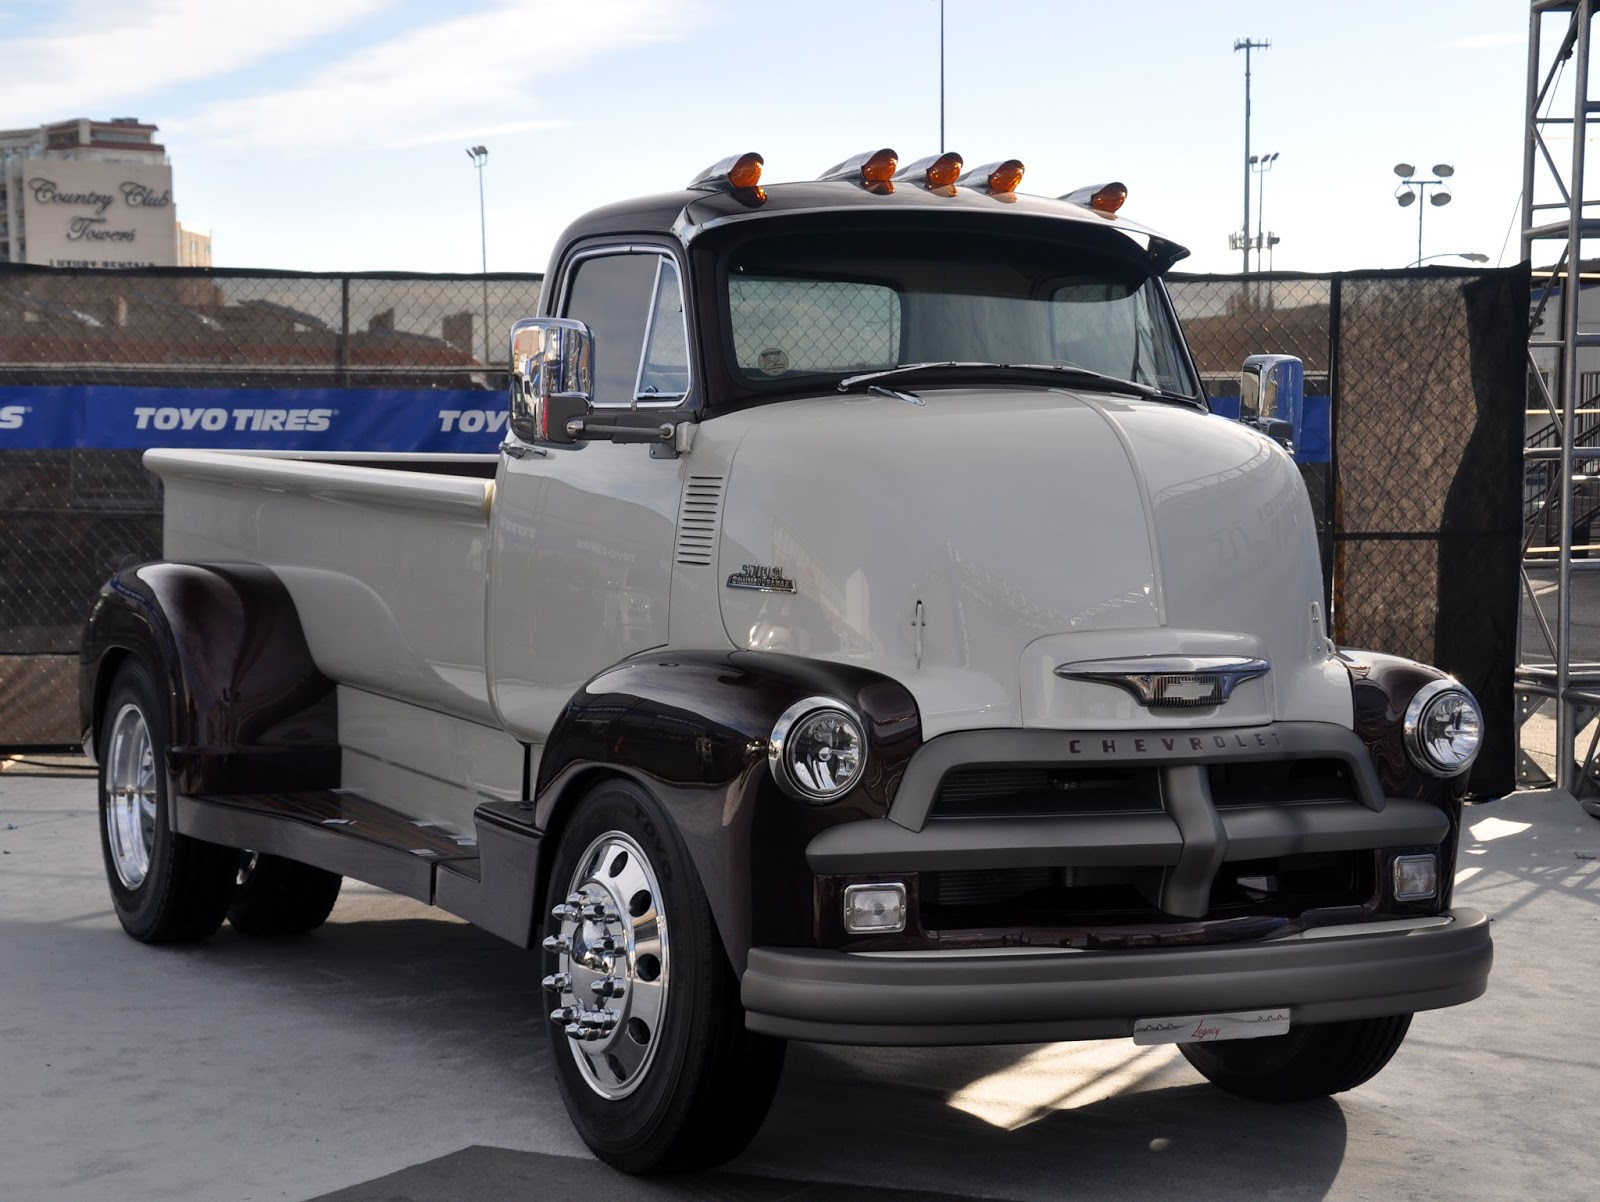 Just A Car Guy Legacy Innovations Made Cool 54 Chevy Coe From 1954 C10 Pick Up Field Find